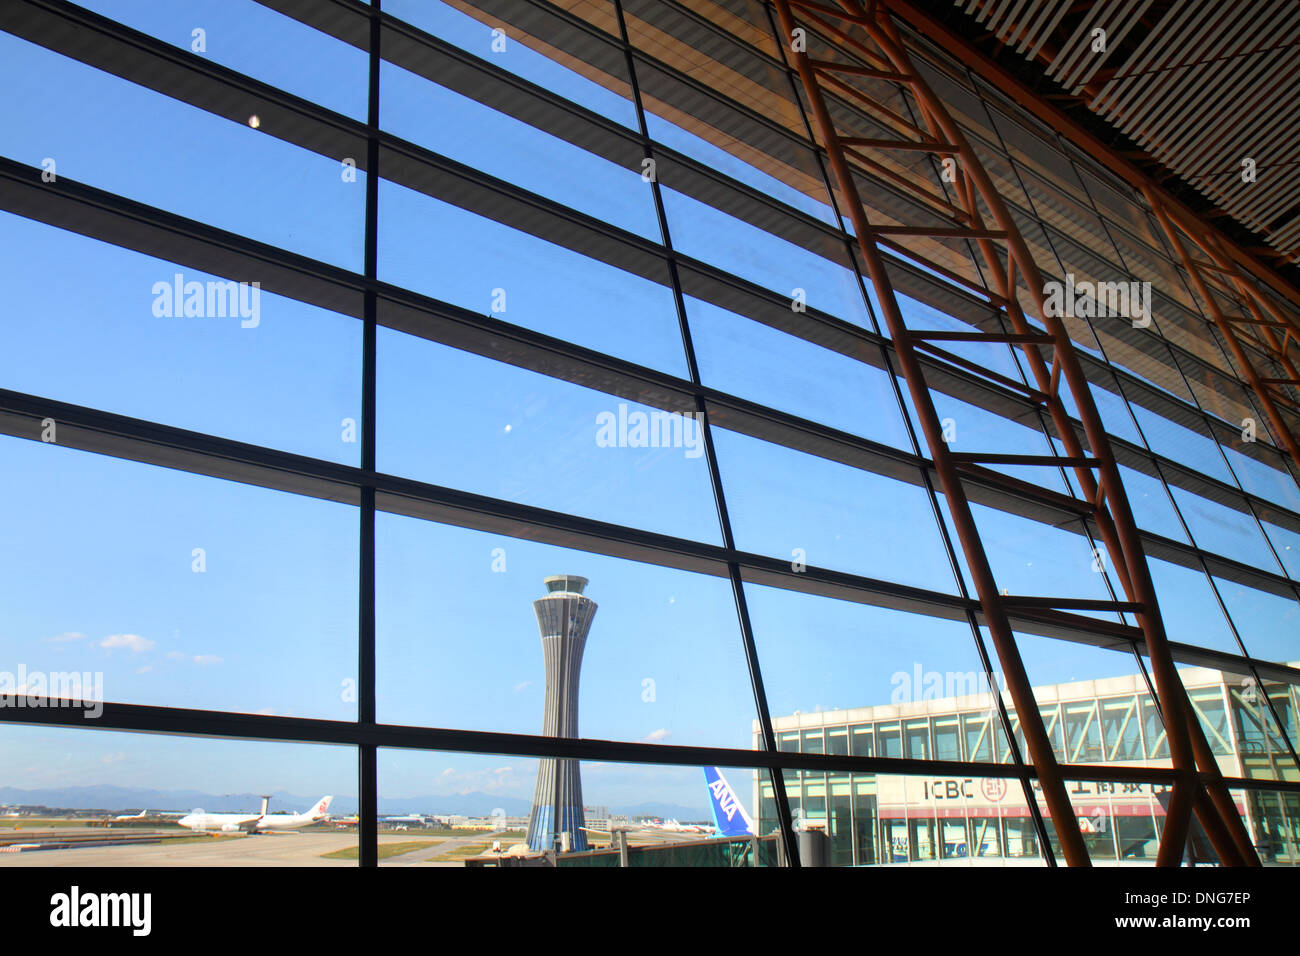 Beijing China Beijing Capital International Airport PEK gate area terminal 3 control tower interior inside design - Stock Image